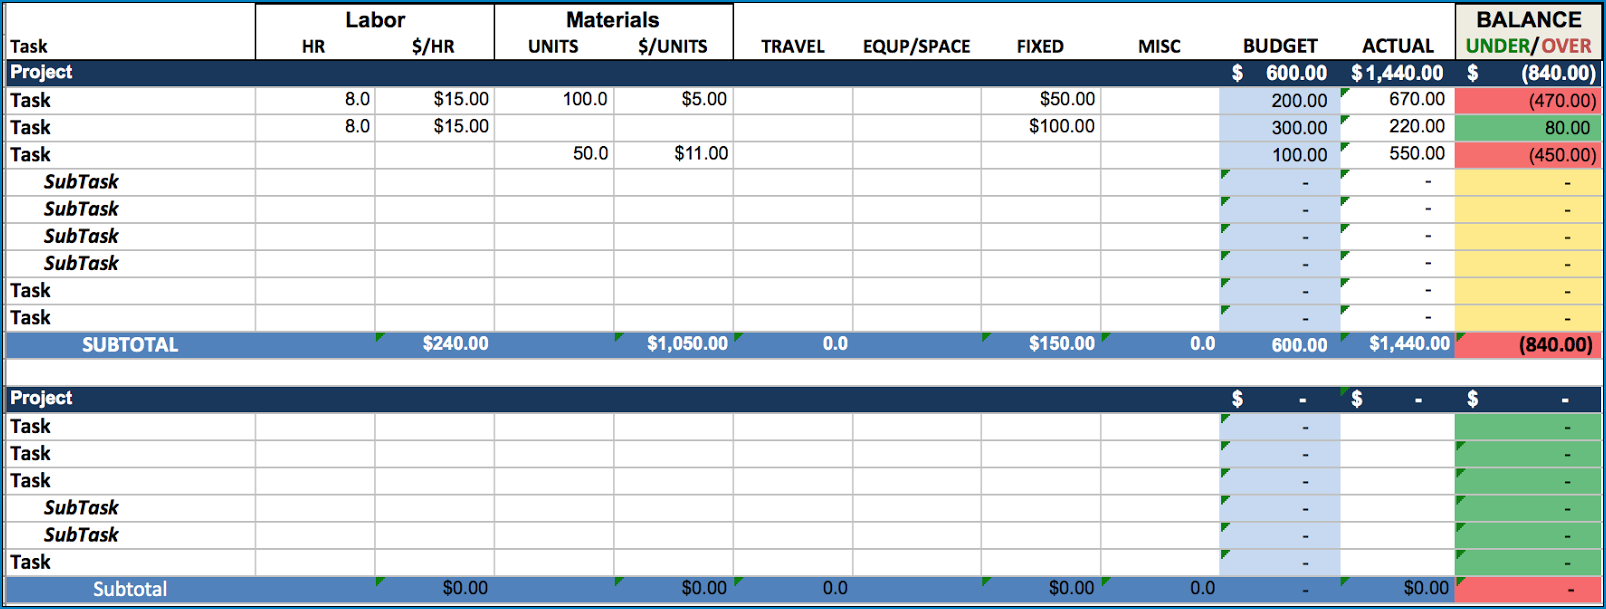 Project Management Budget Template Example